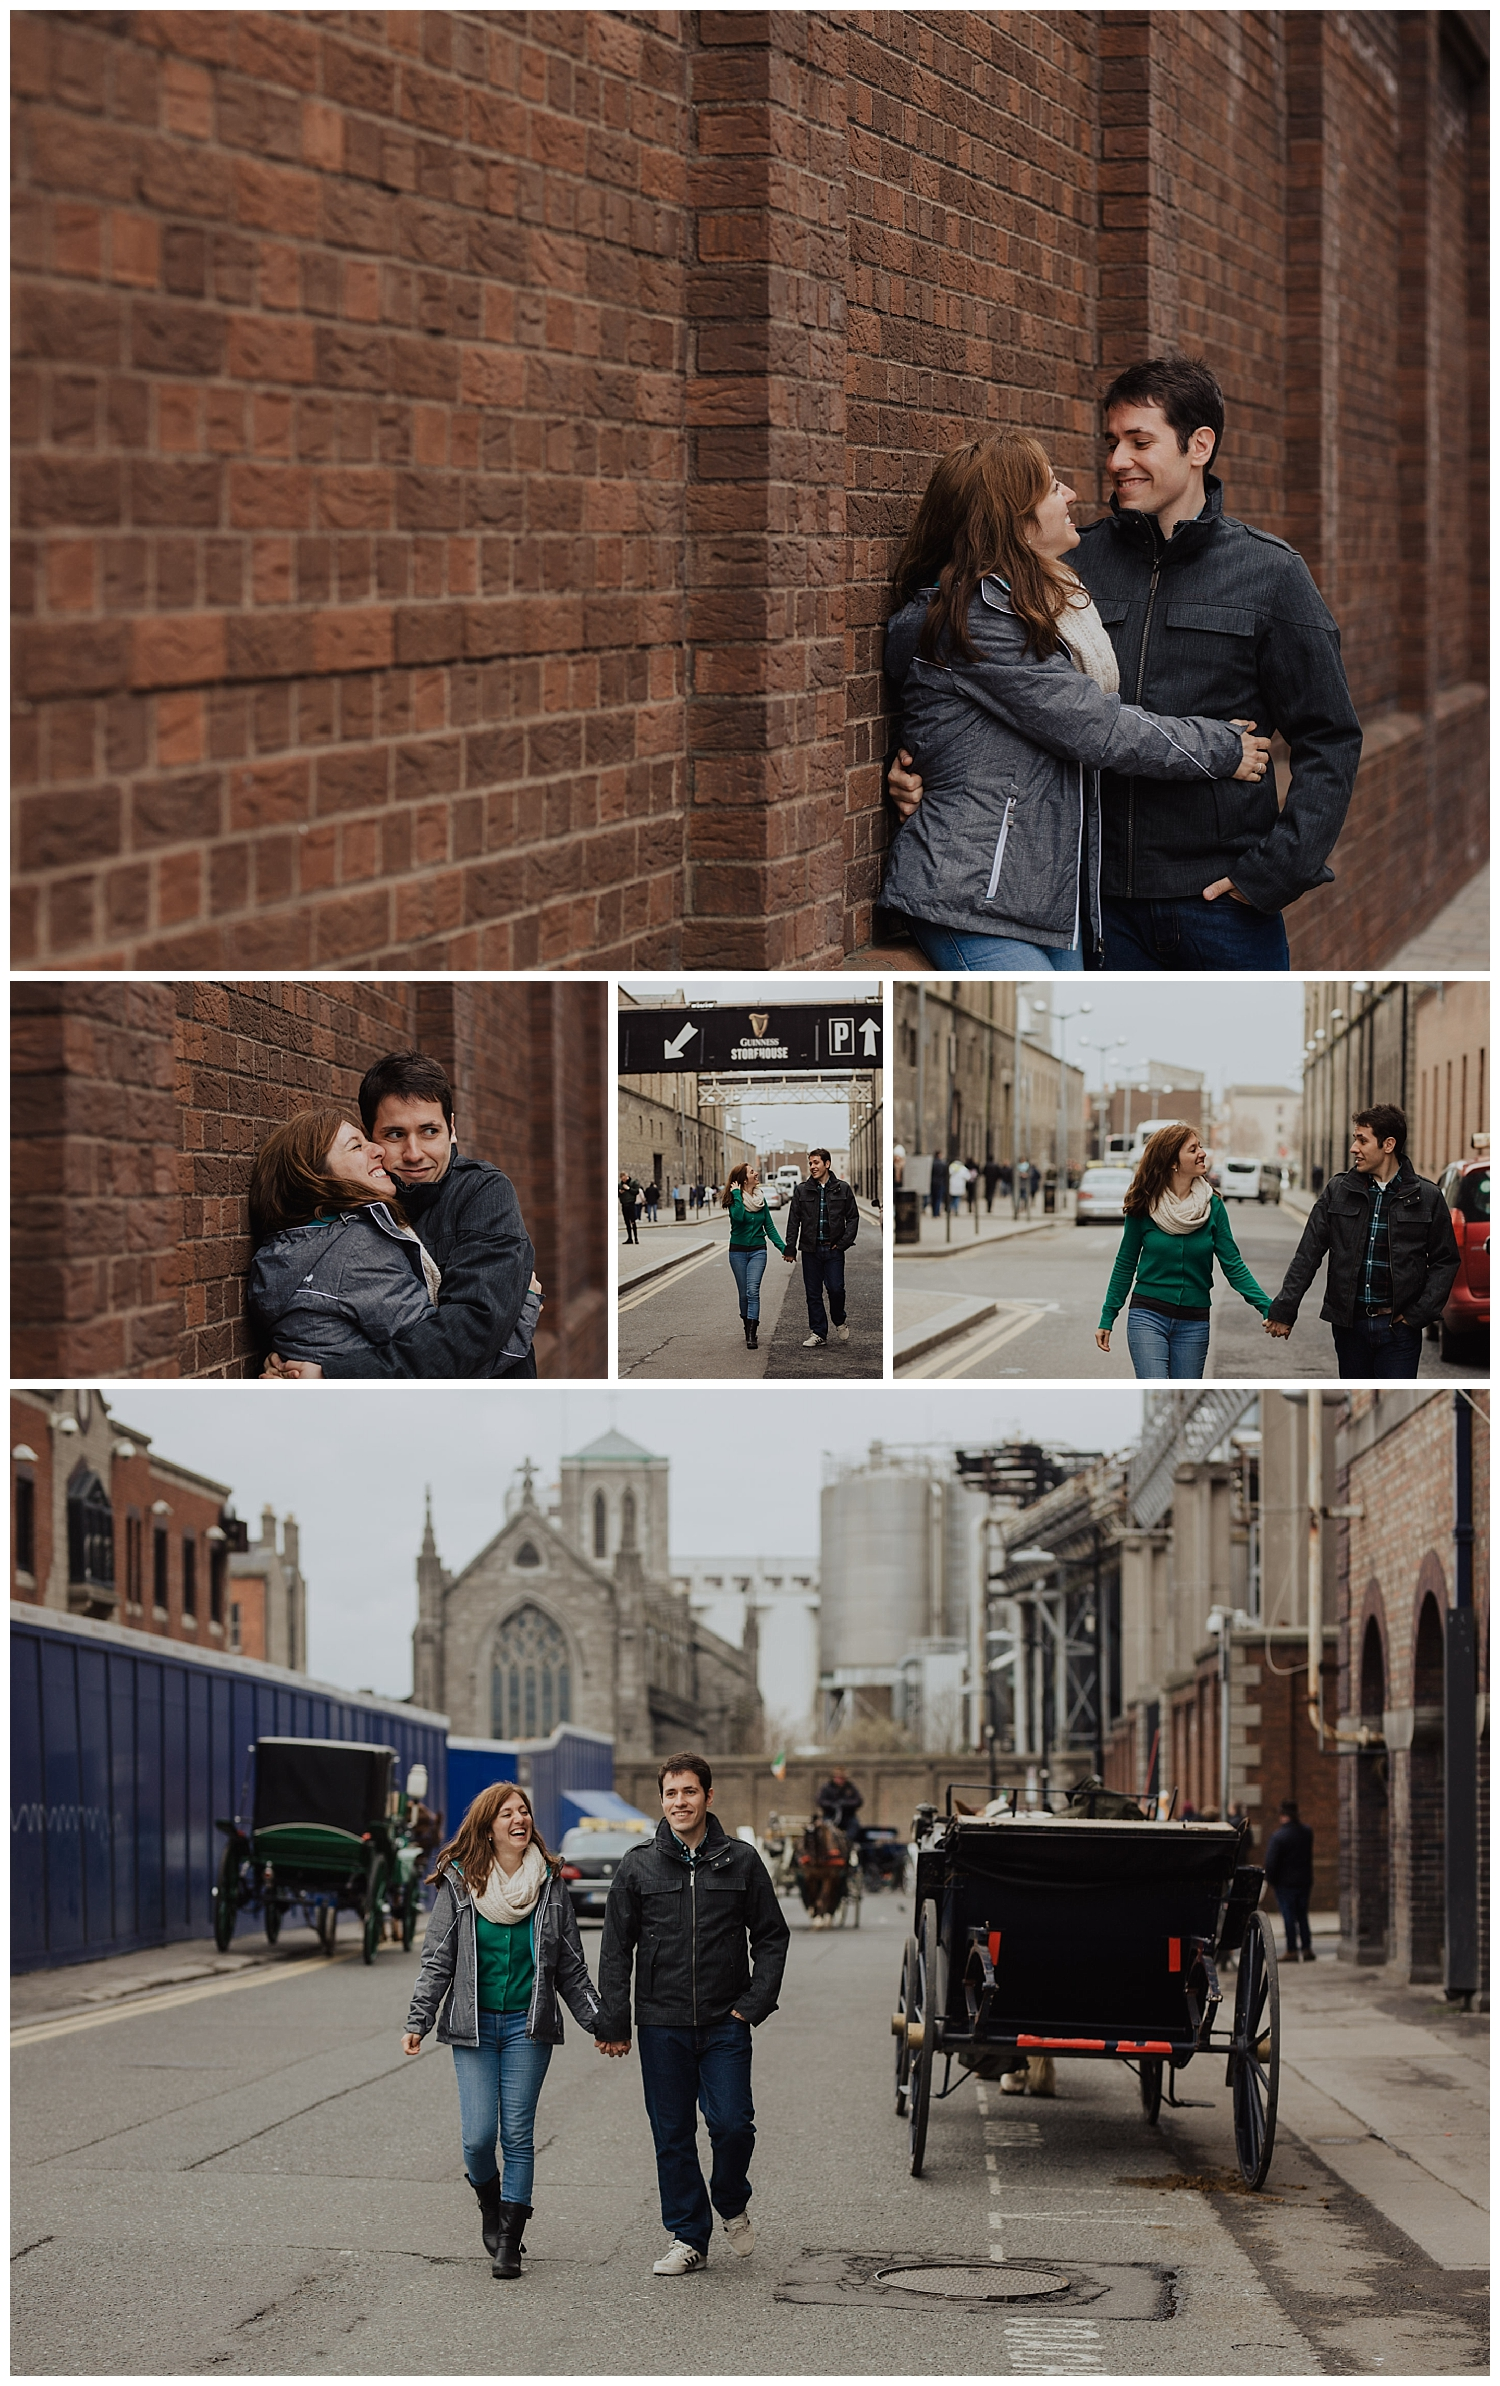 engagement_photos_guiness_storehouse_dublin_ireland_livia_figueiredo_58.jpg